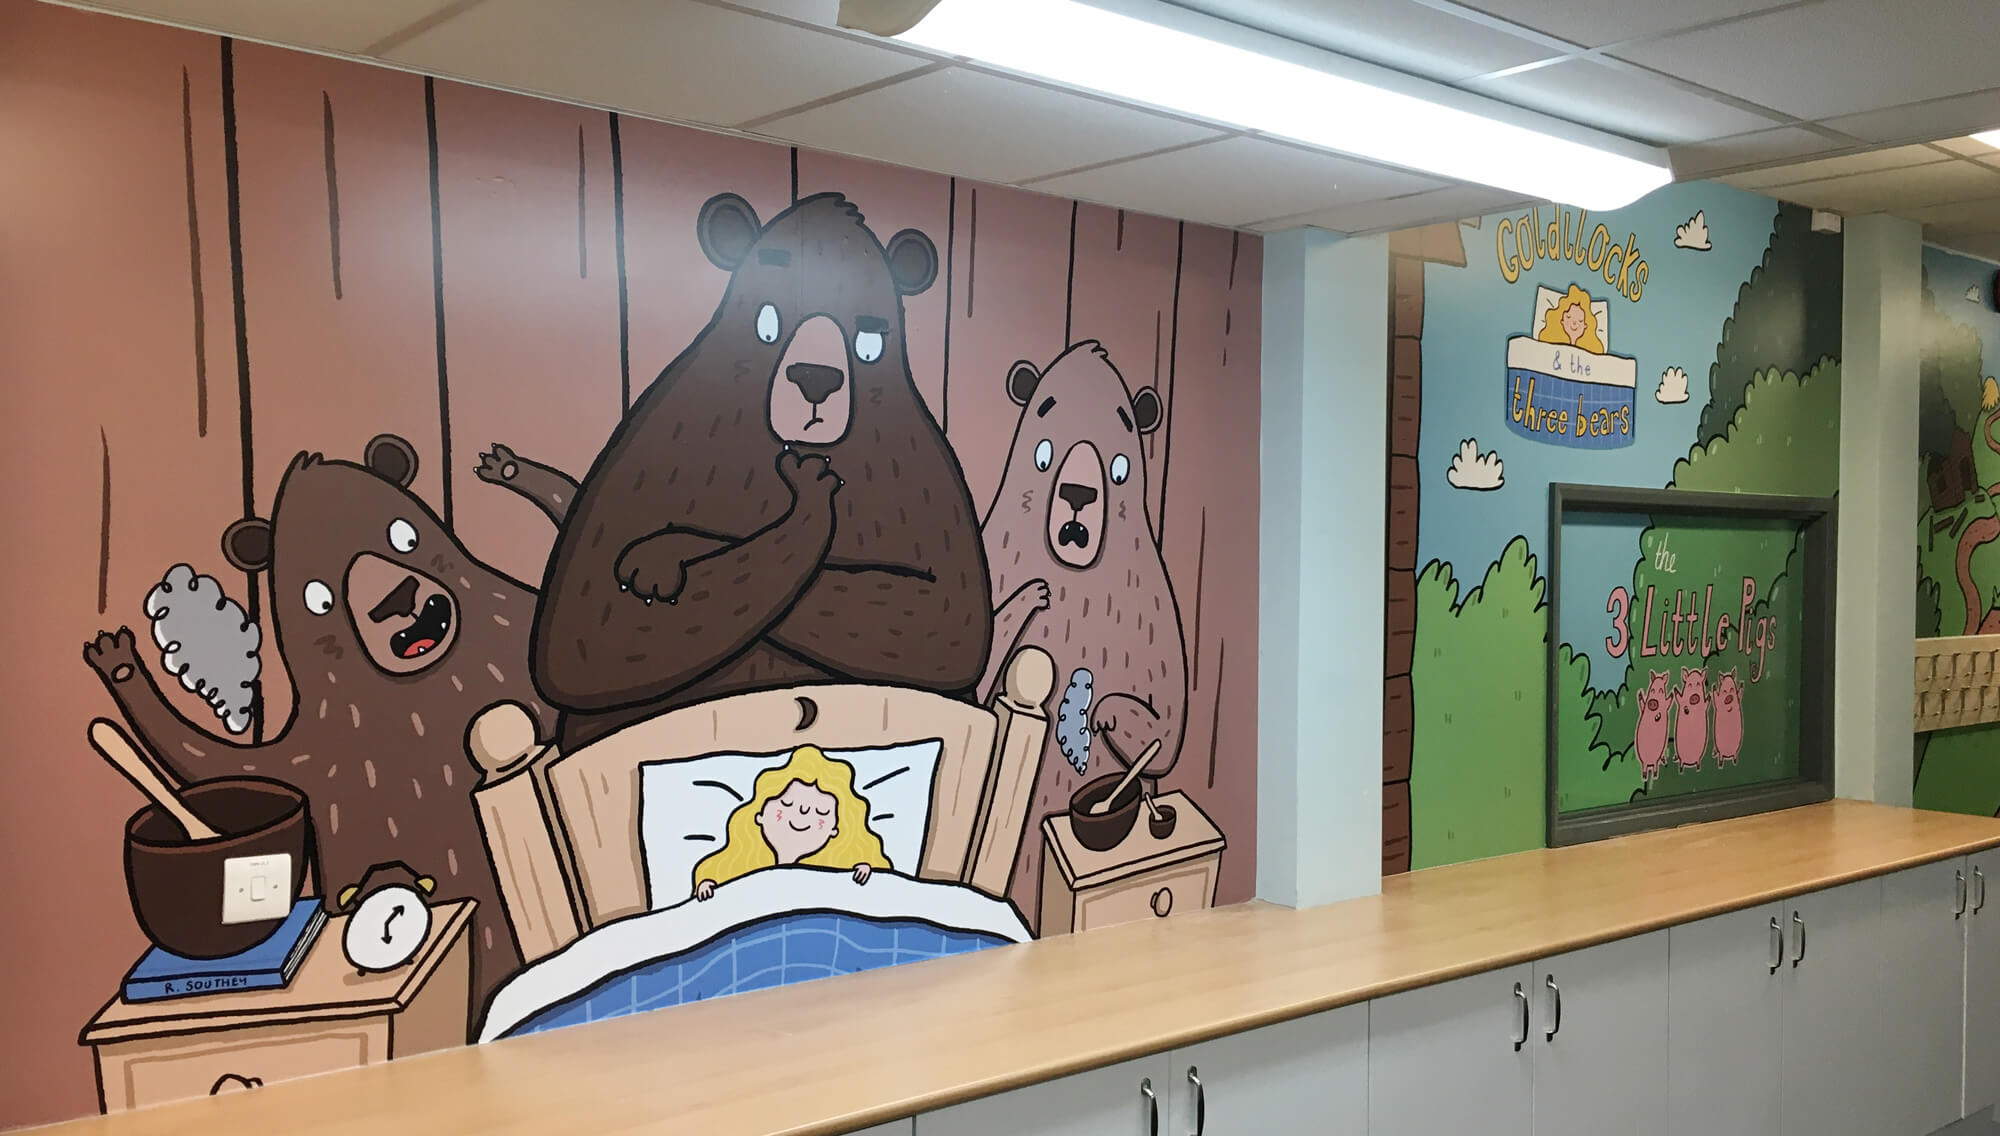 sacred_heart_primary_traditional_tales_wallgraphics_04.jpg